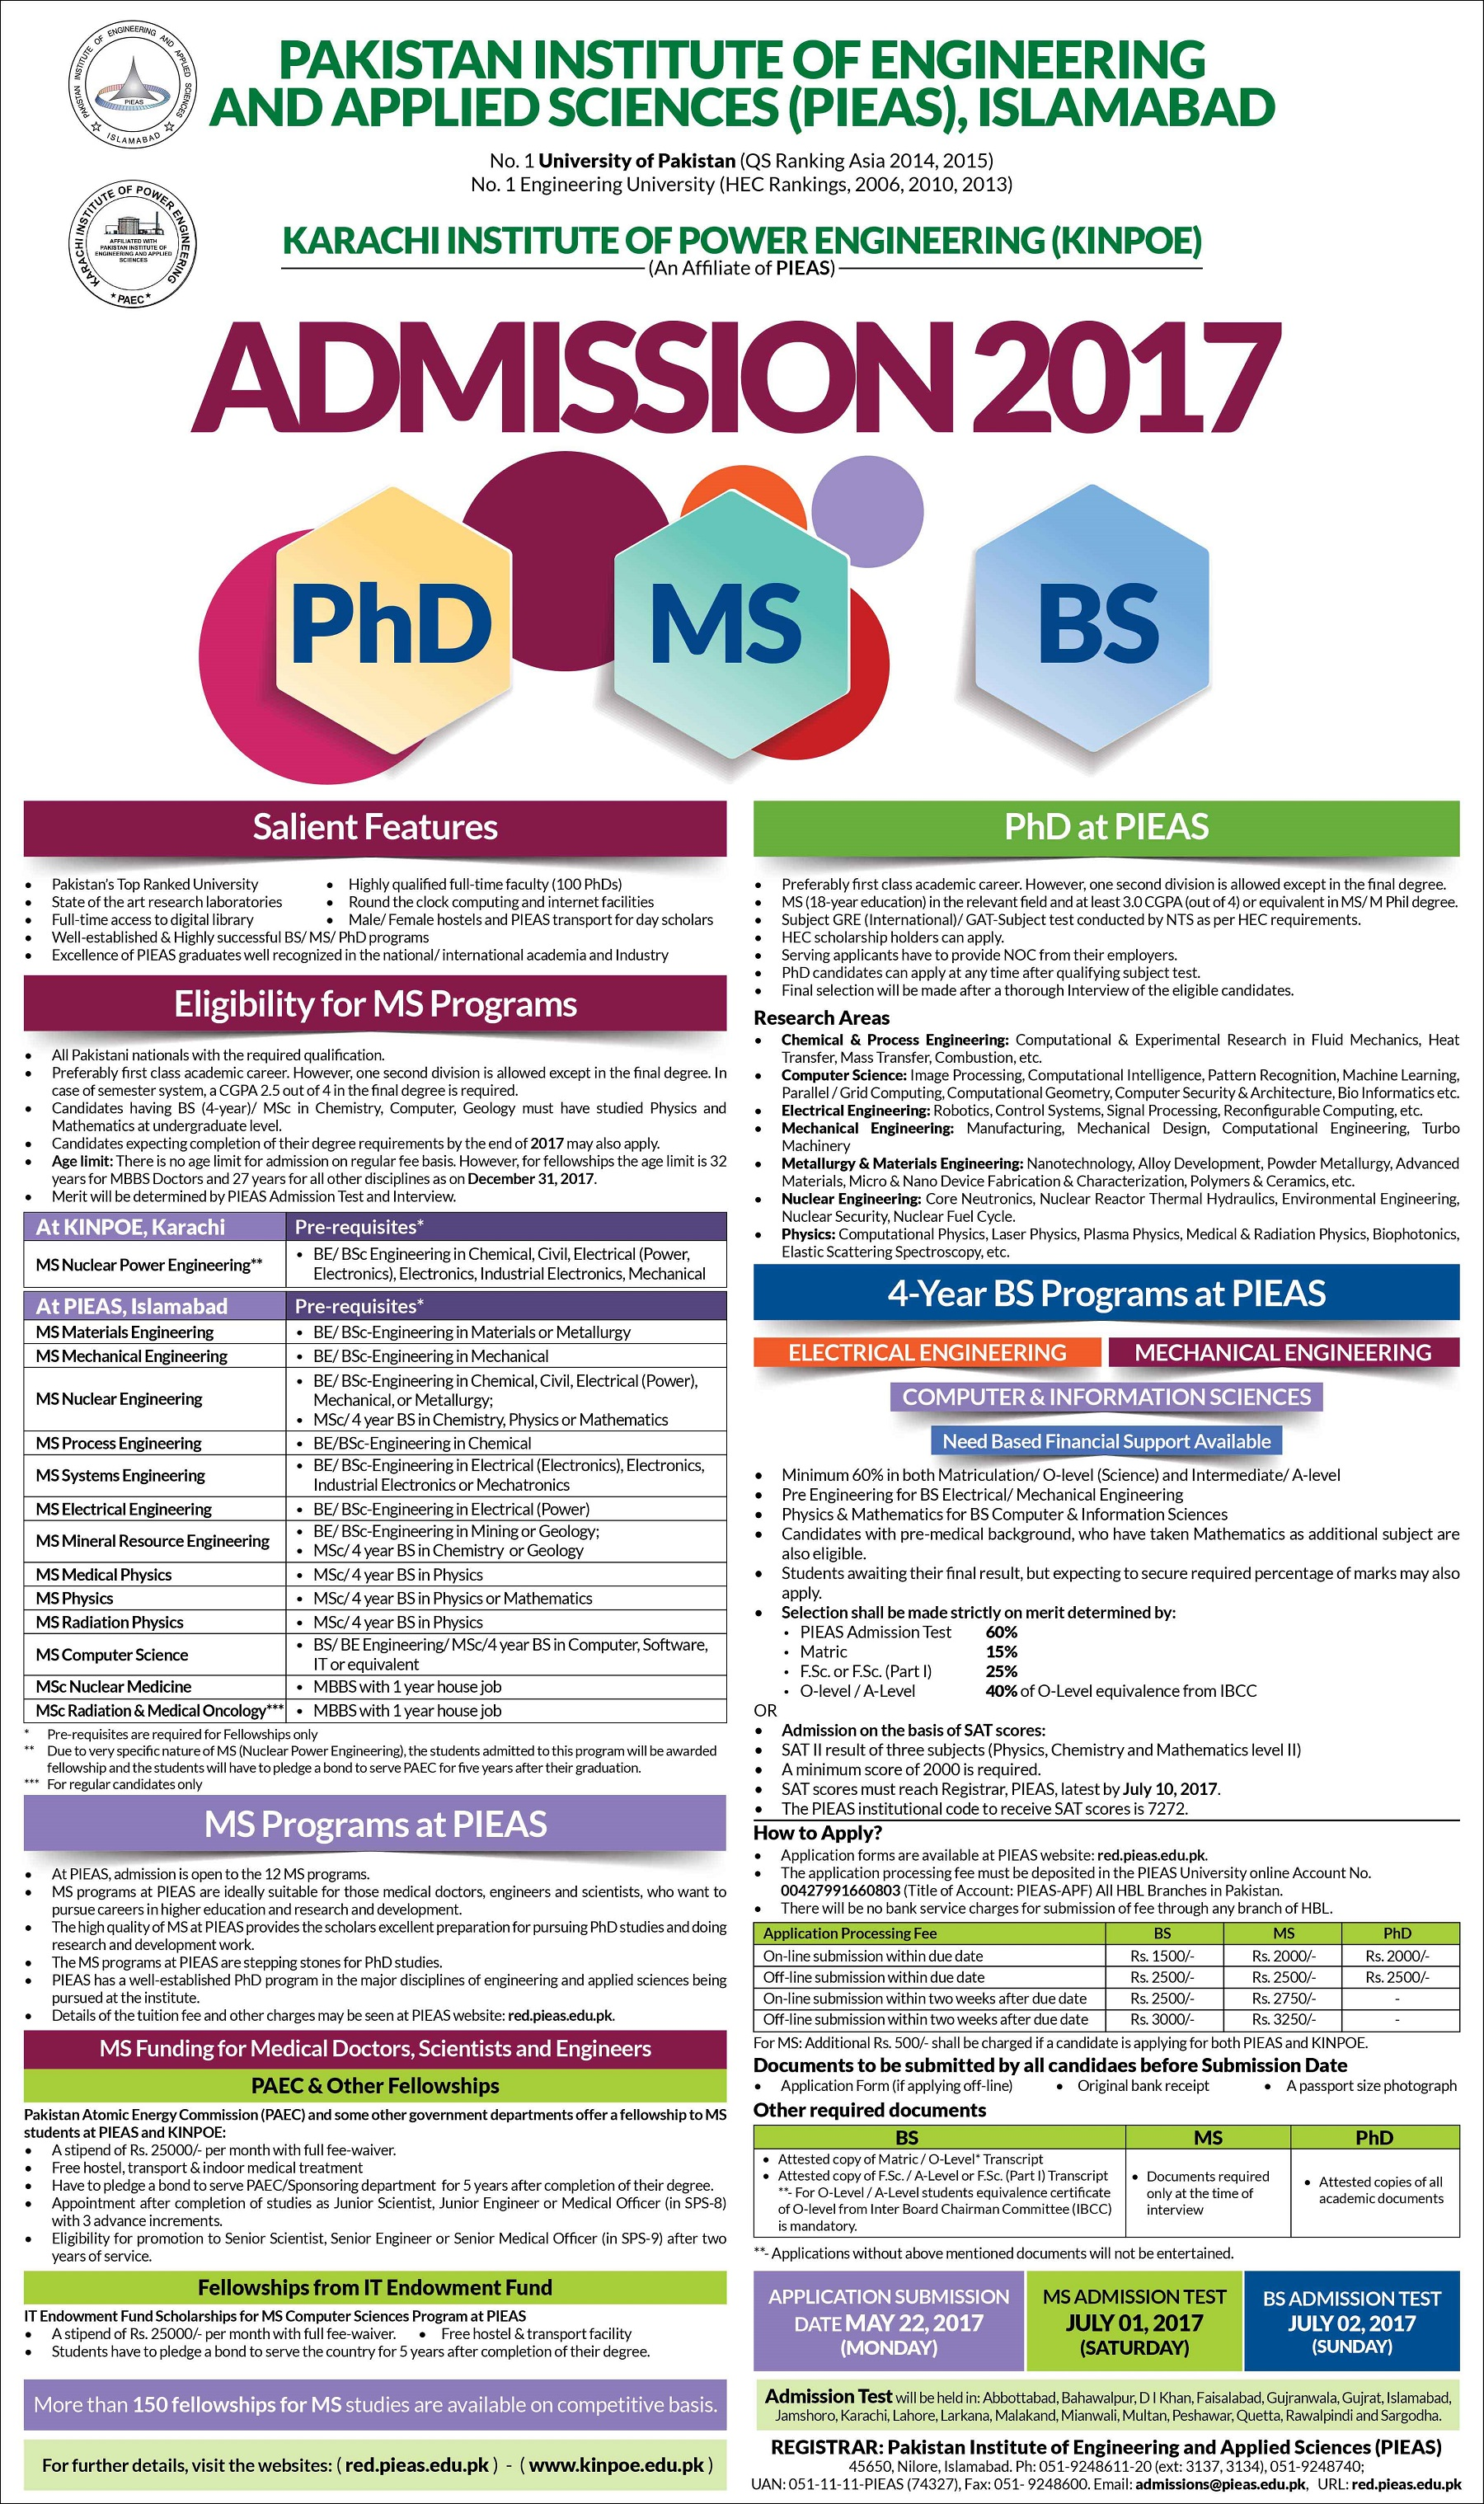 Pakistan Institute of Engineering & Applied Sciences (PIEAS), Islamabad Admissions Open 2017